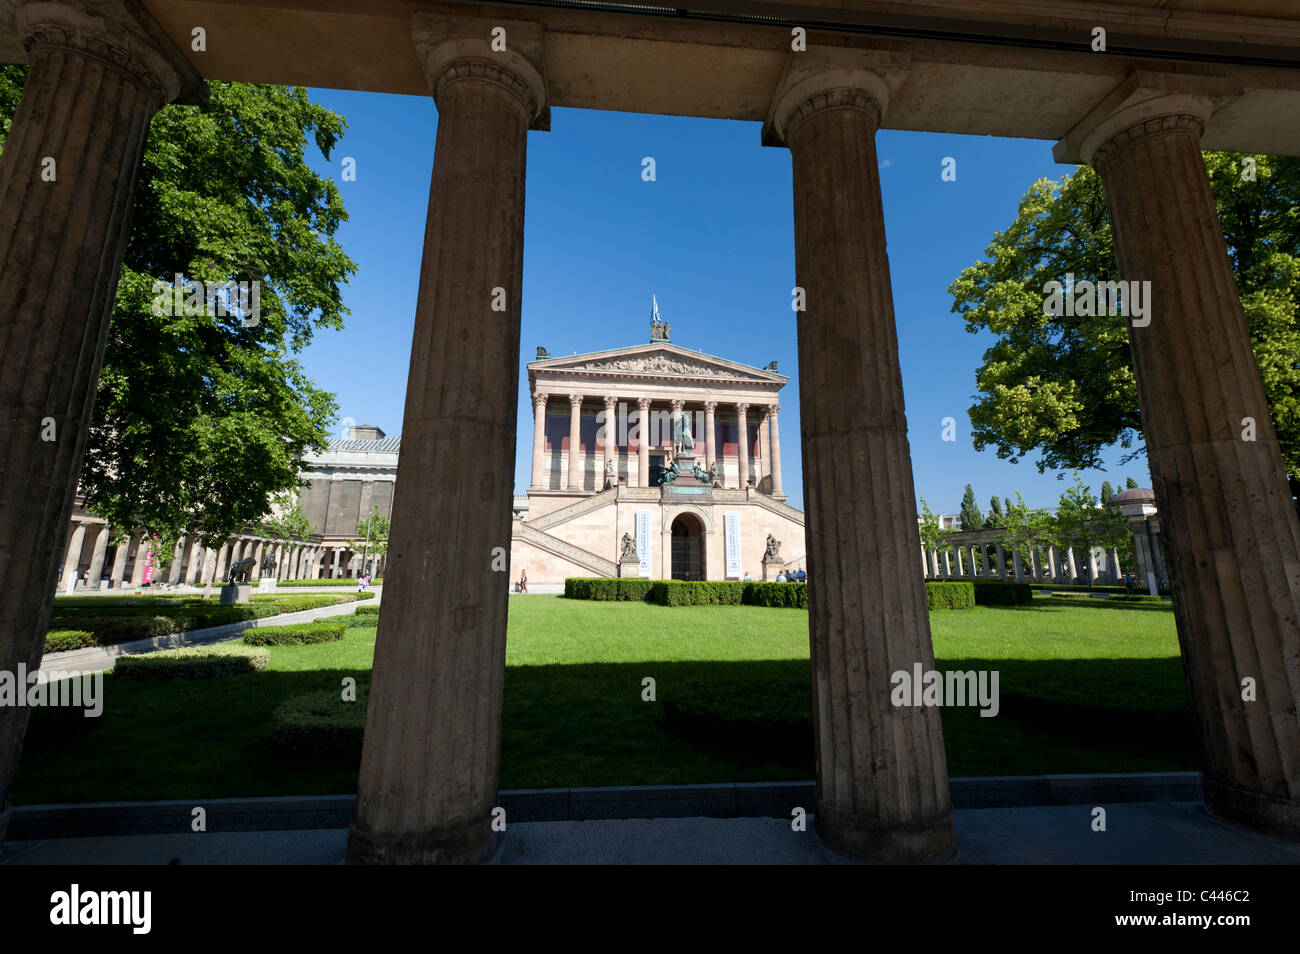 Exterior of Alte Nationalgalerie art museum on Museum Island or Museumsinsel in Mitte district of Berlin Germany - Stock Image